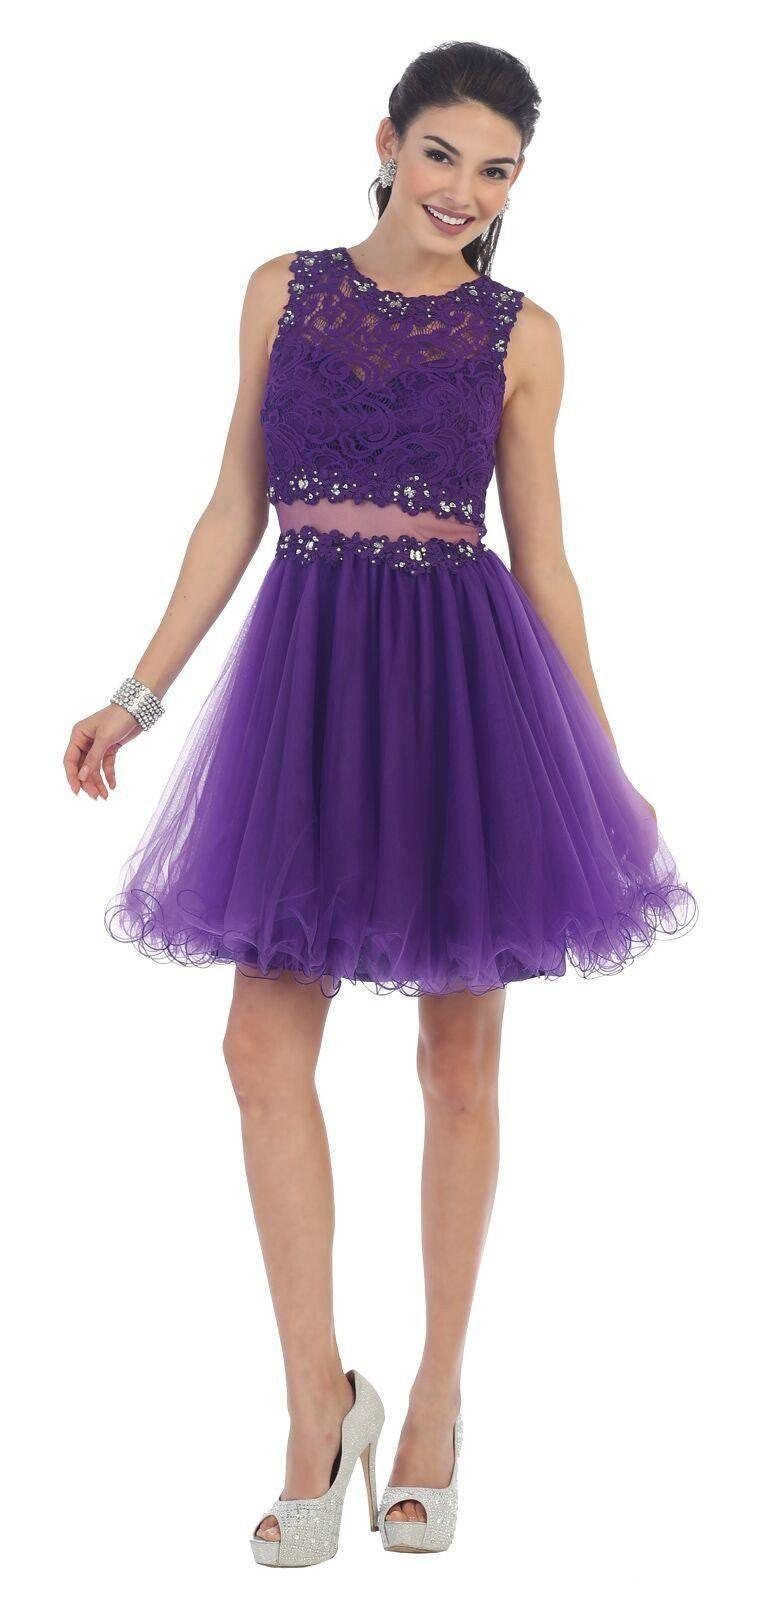 Short Prom Formal Homecoming Dress - The Dress Outlet Purple May Queen